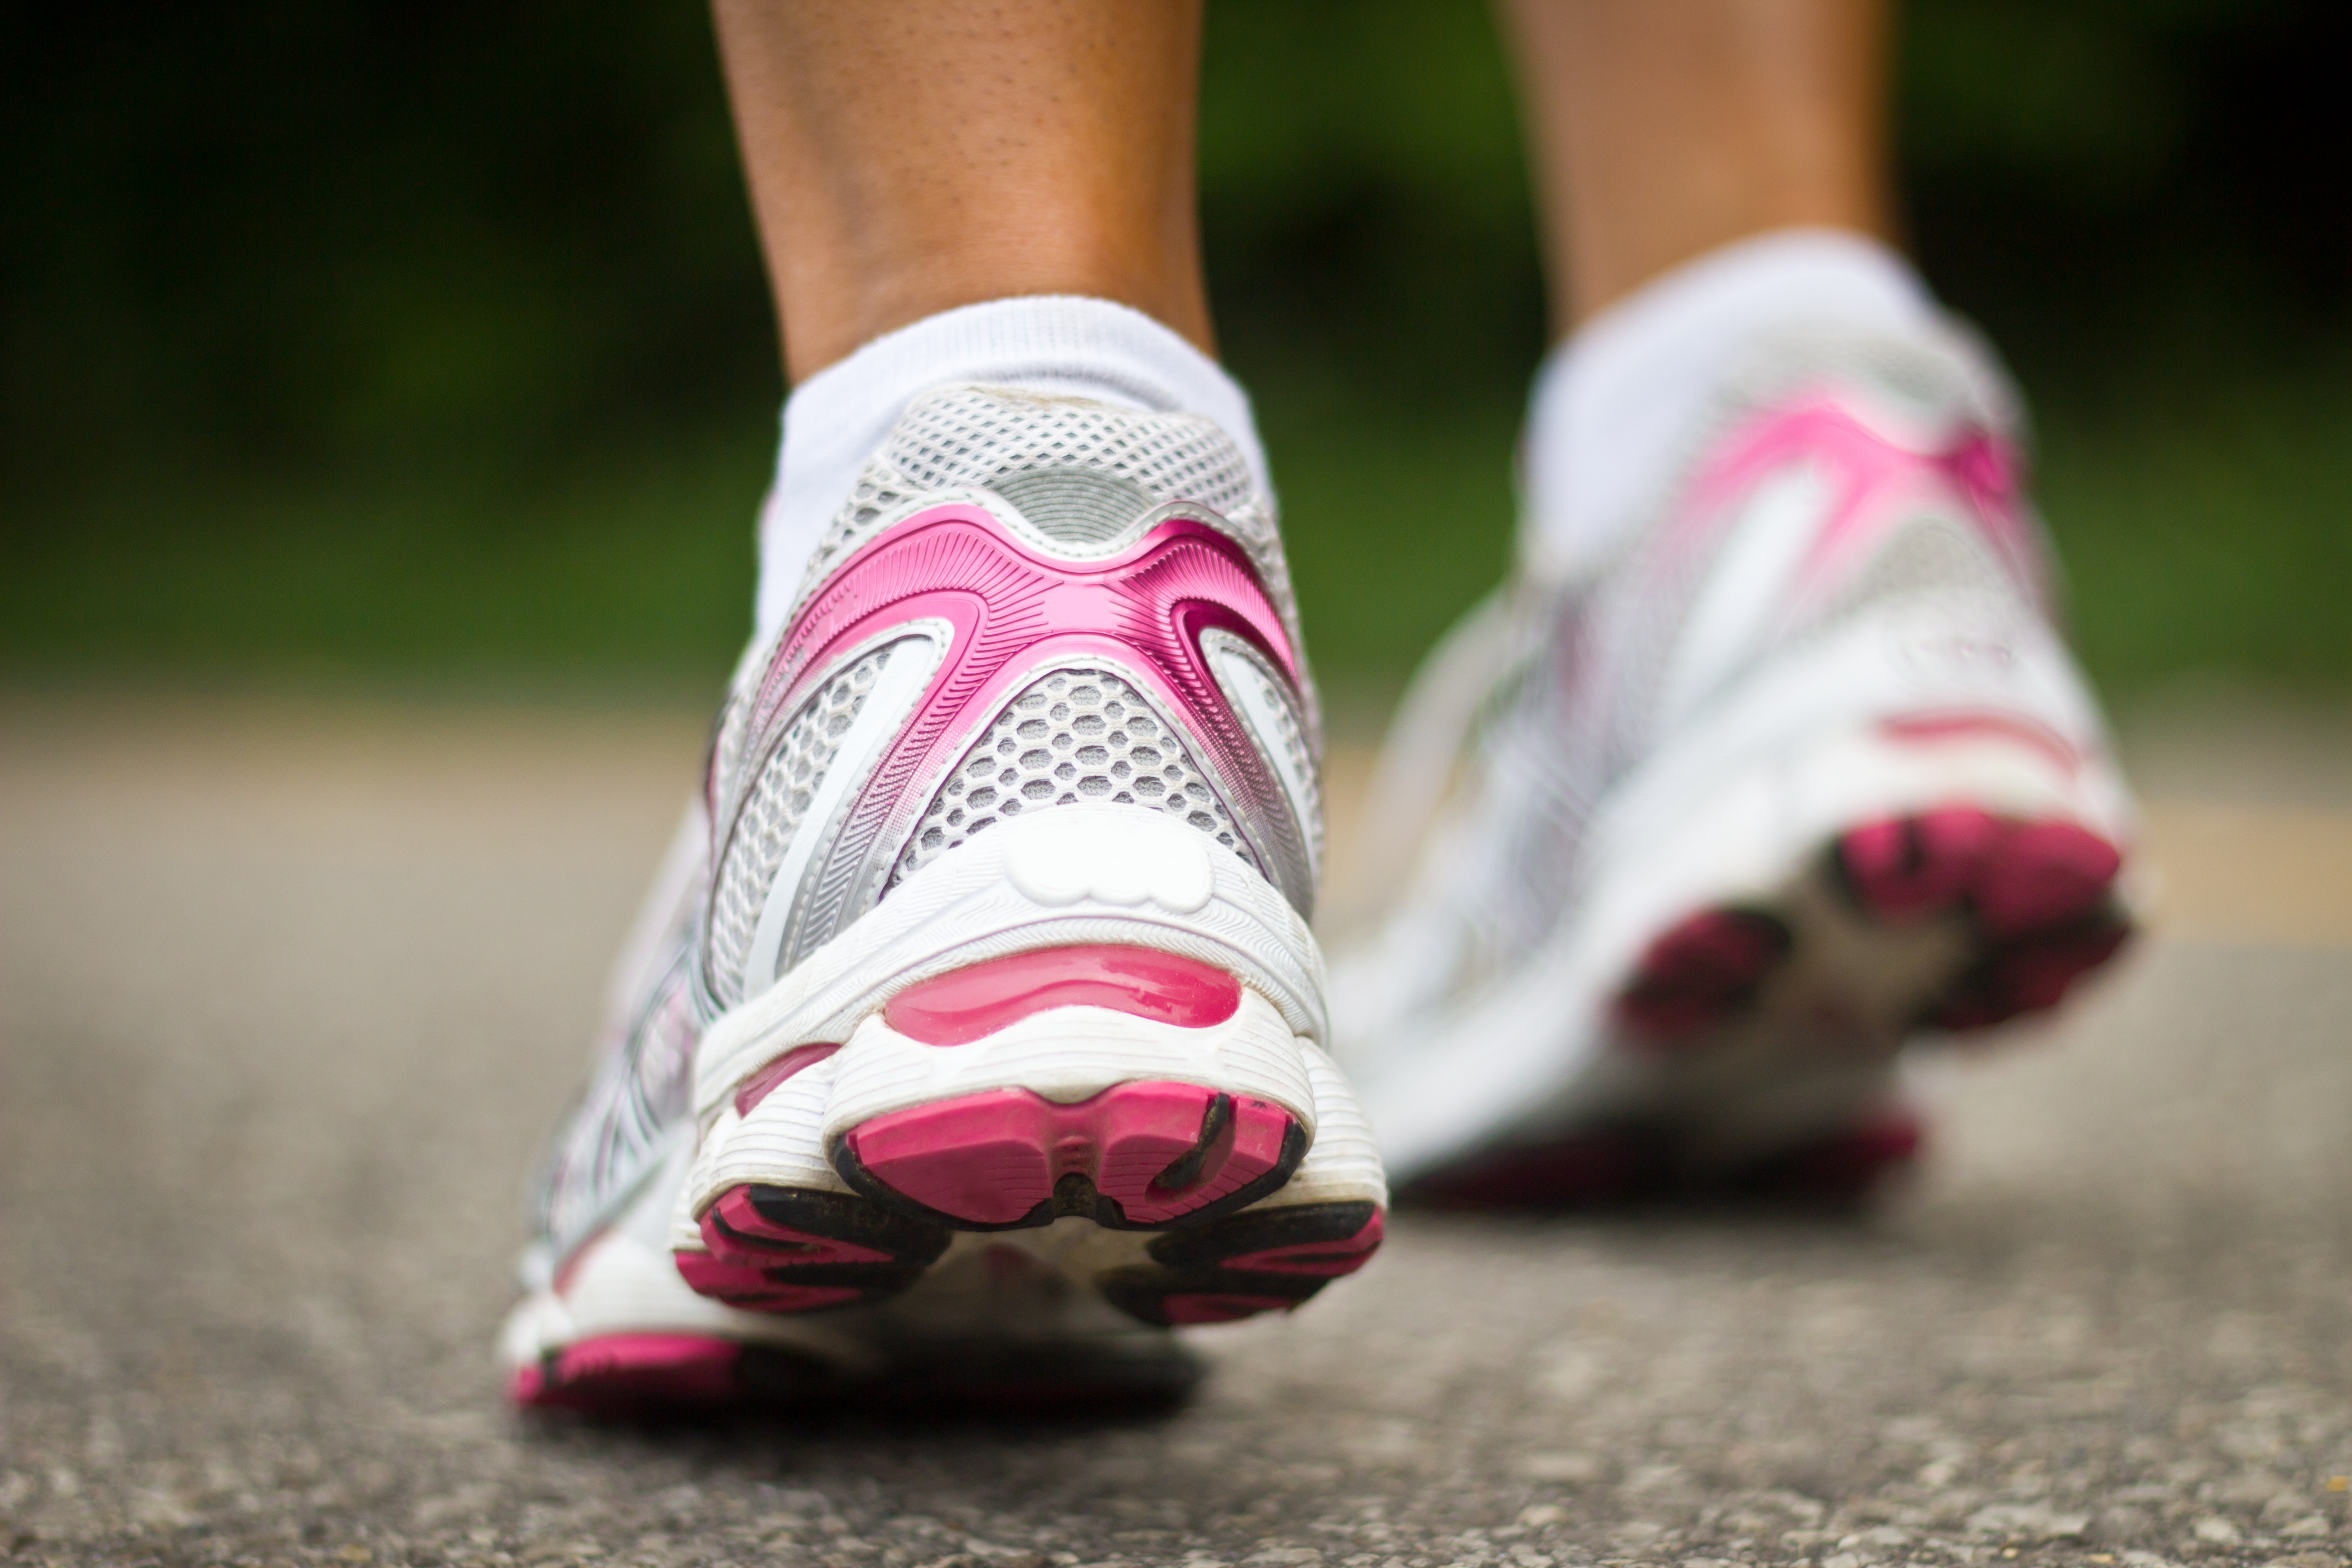 Getting your running shoes out and pounding the pavement because exercise is an important life skill.